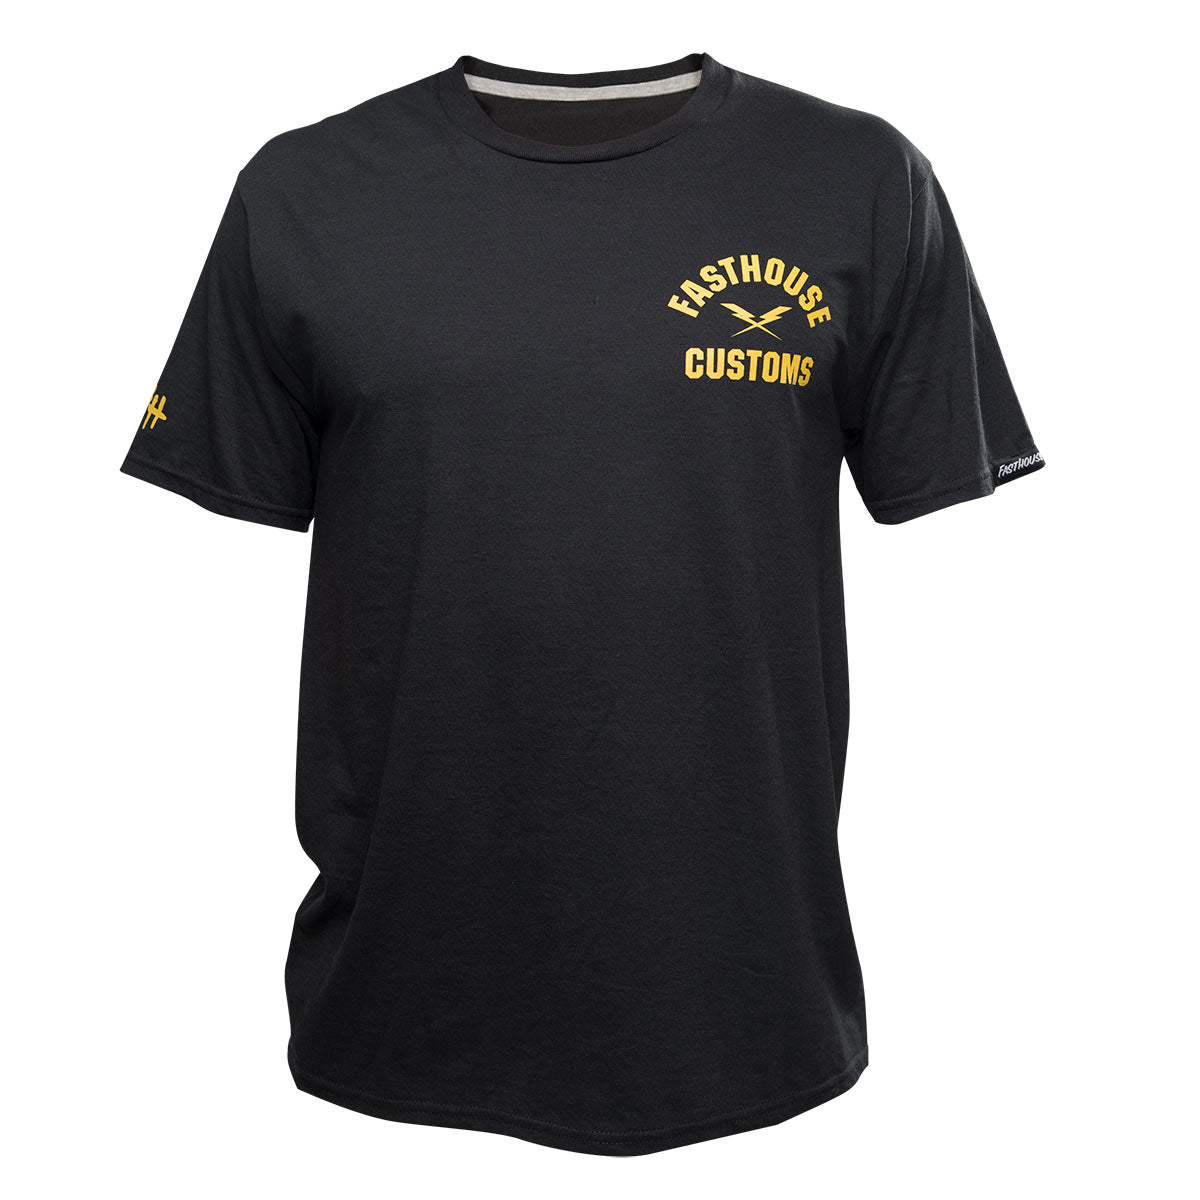 Fasthouse - Jody Tech Tee MTB - Black